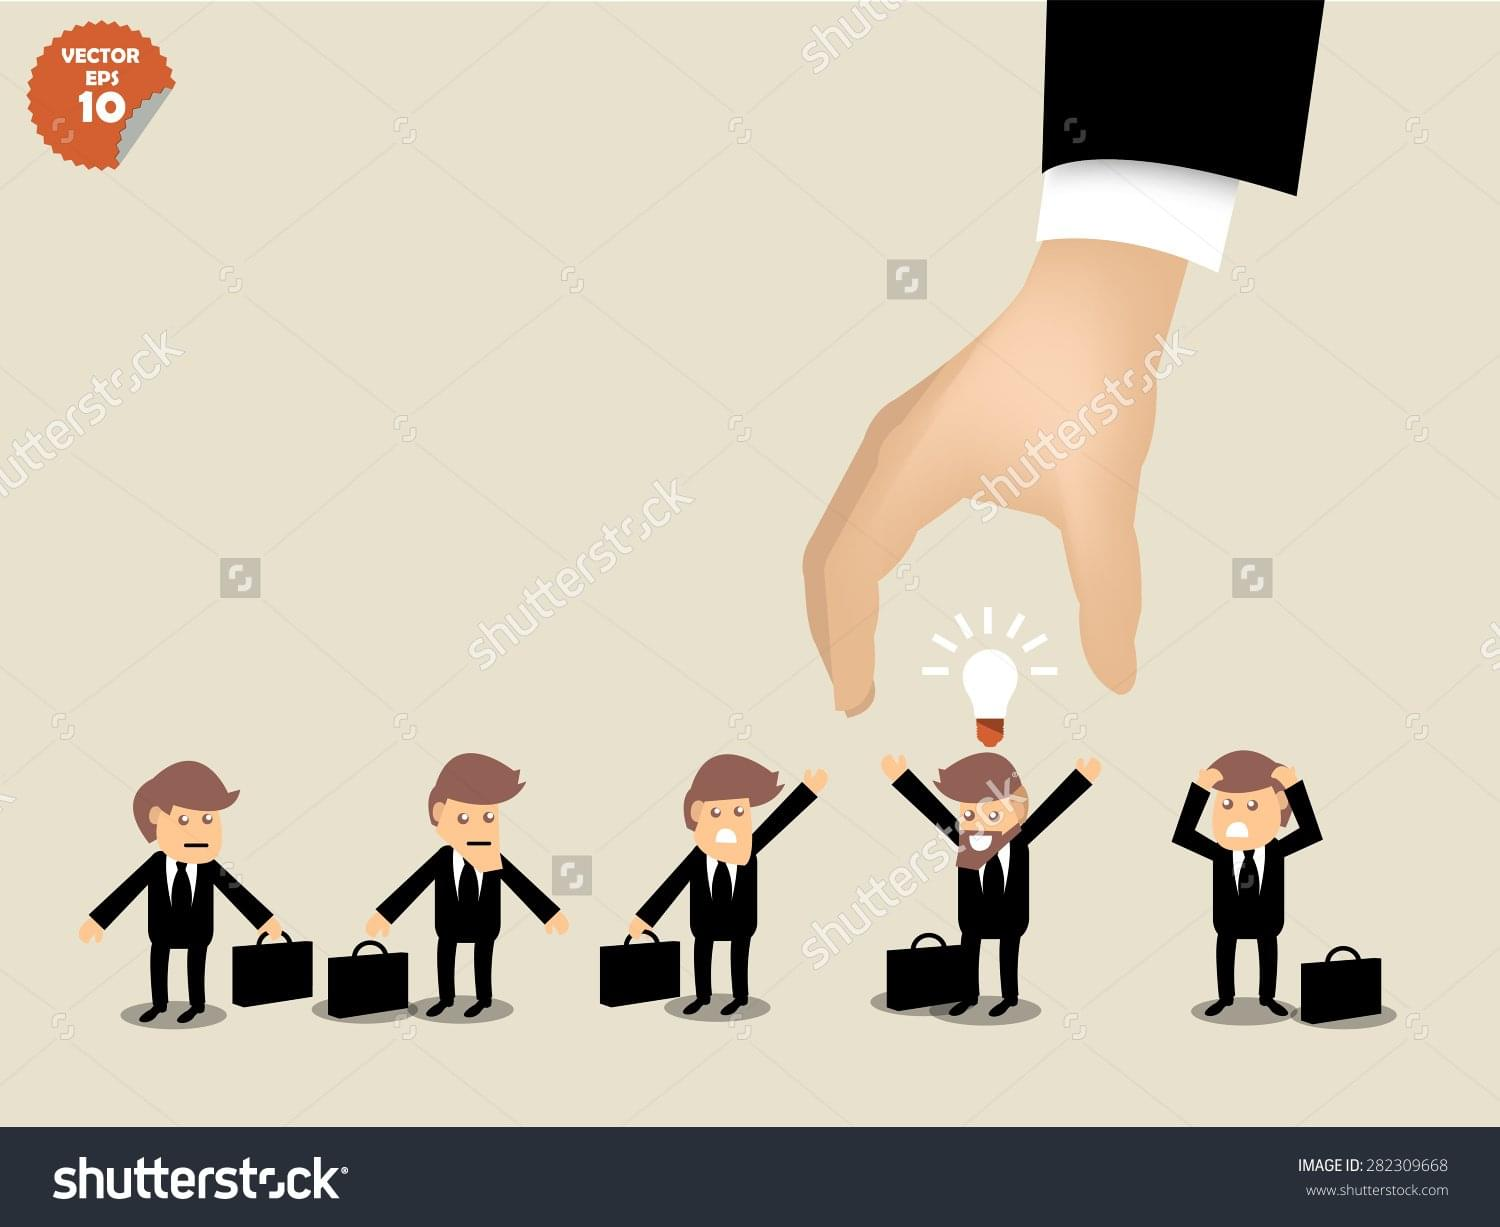 stock-vector-recruitment-concept-business-man-choosing-worker-who-has-idea-from-group-of-business-people-282309668